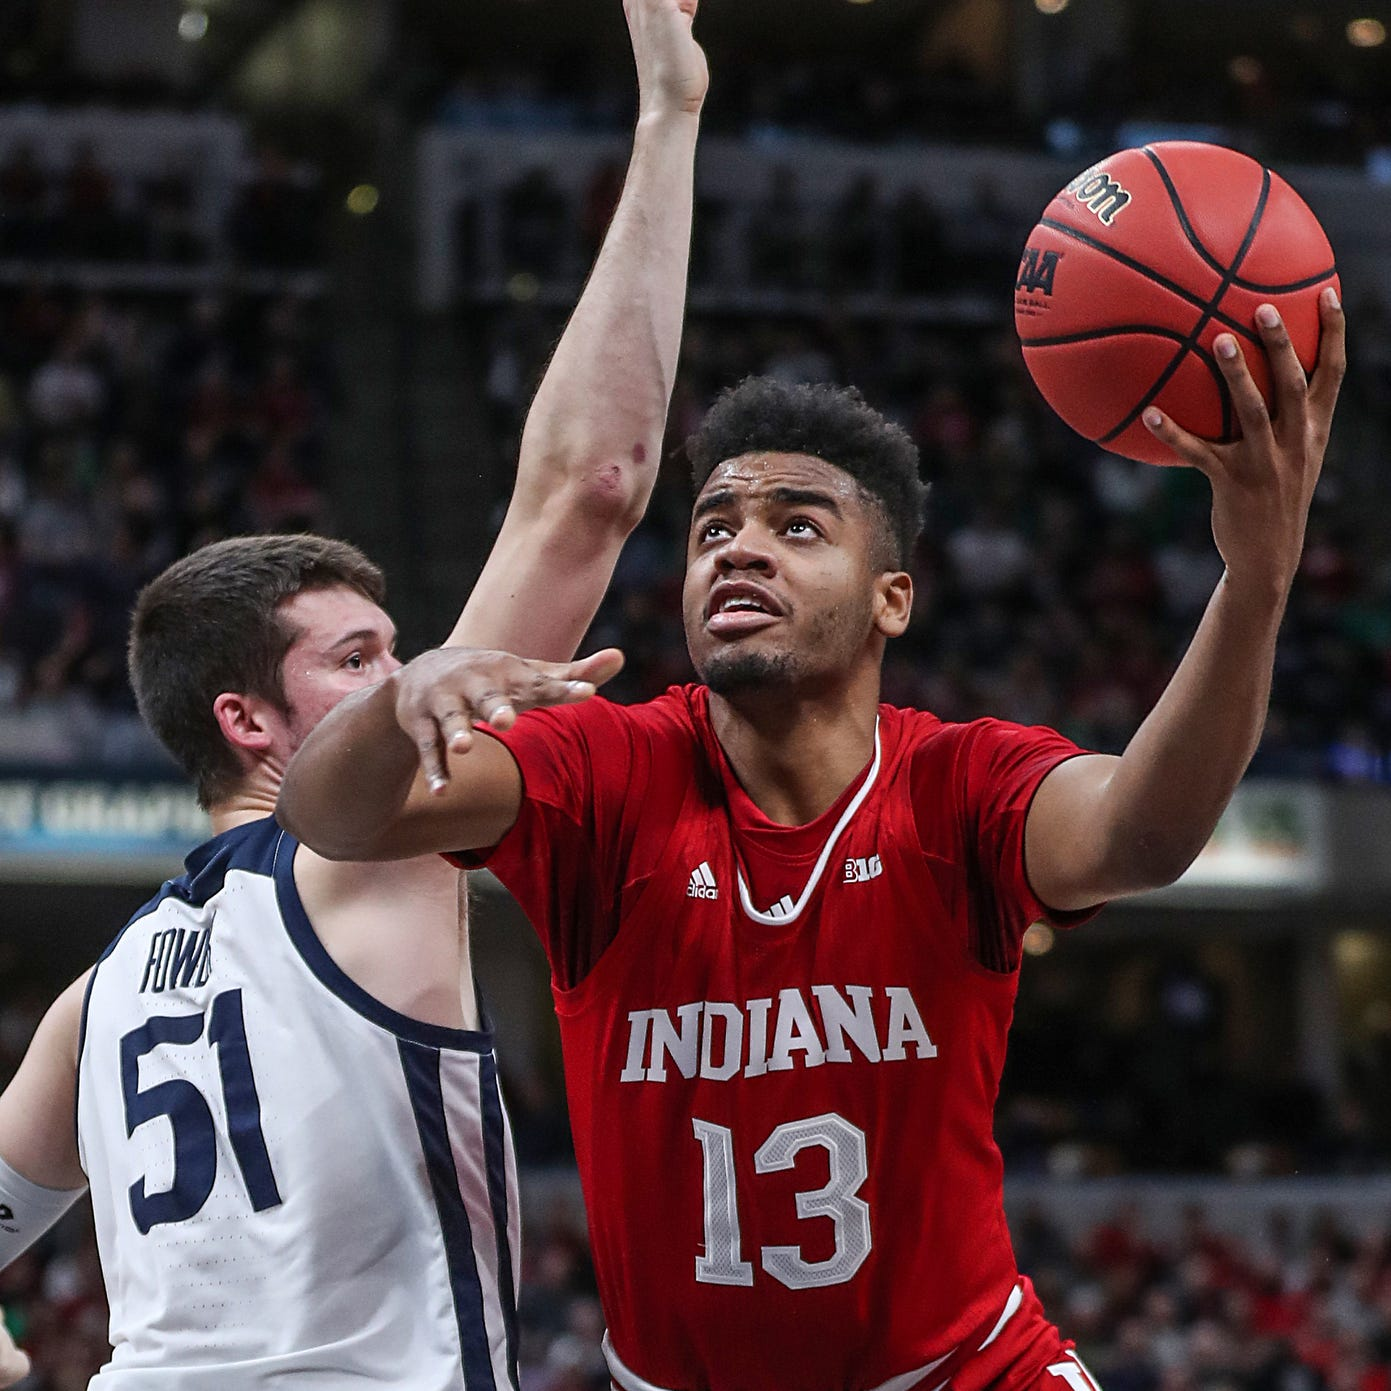 Insider: Make no mistake, Juwan Morgan joining likes of IU basketball greats